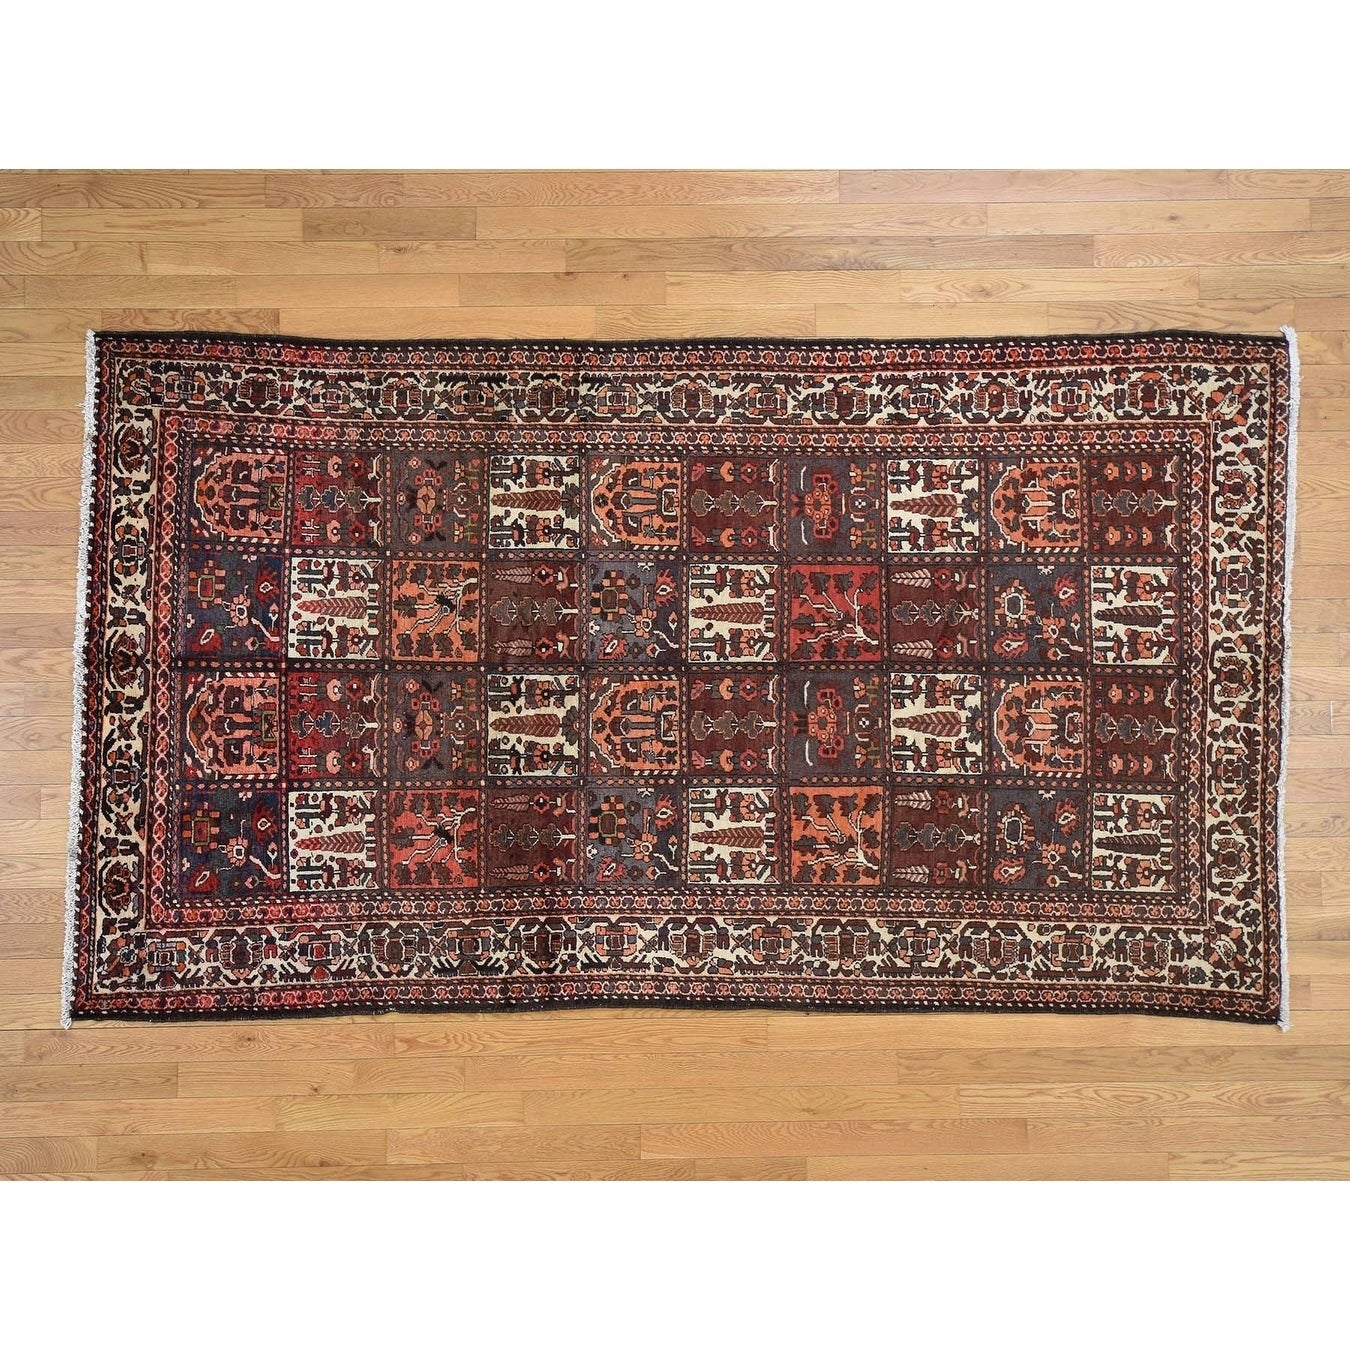 Hand Knotted Orange Persian with Wool Oriental Rug - 56 x 97